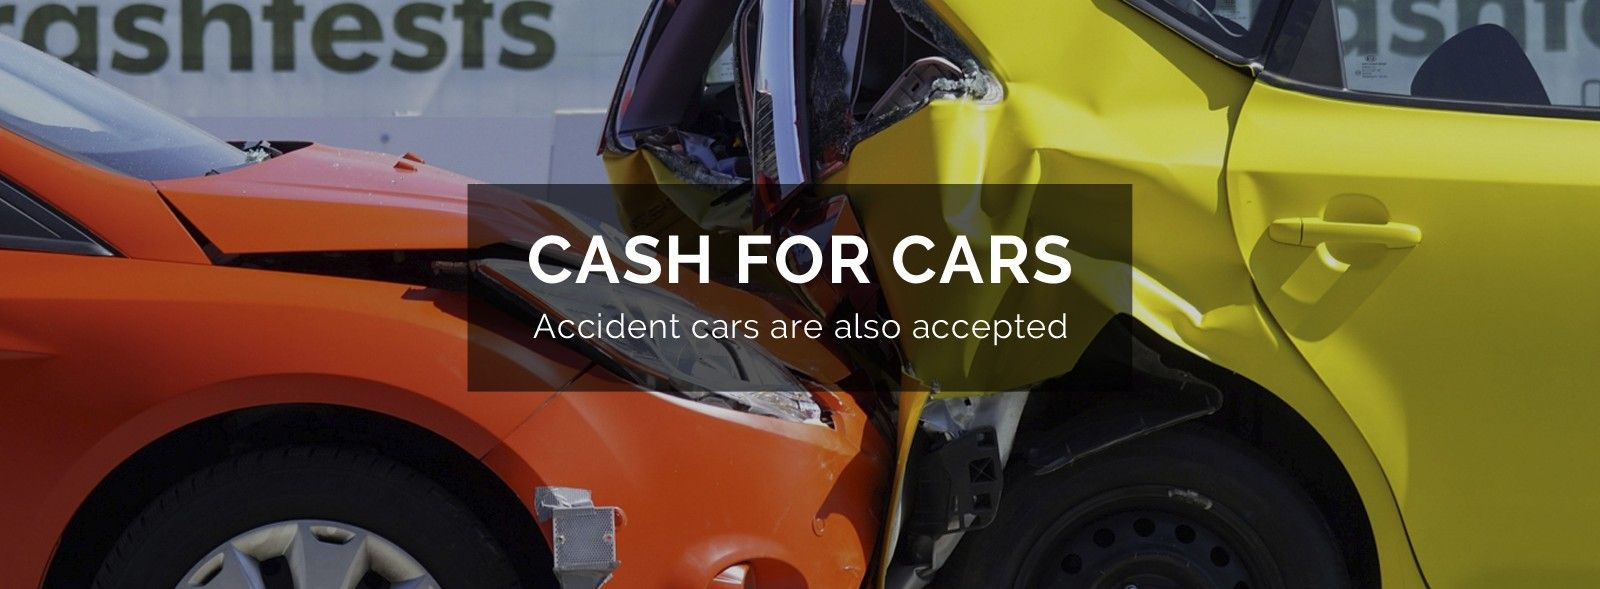 Pin By Guru On Perth Auto Wreckers Contact Cars Car Ins Perth